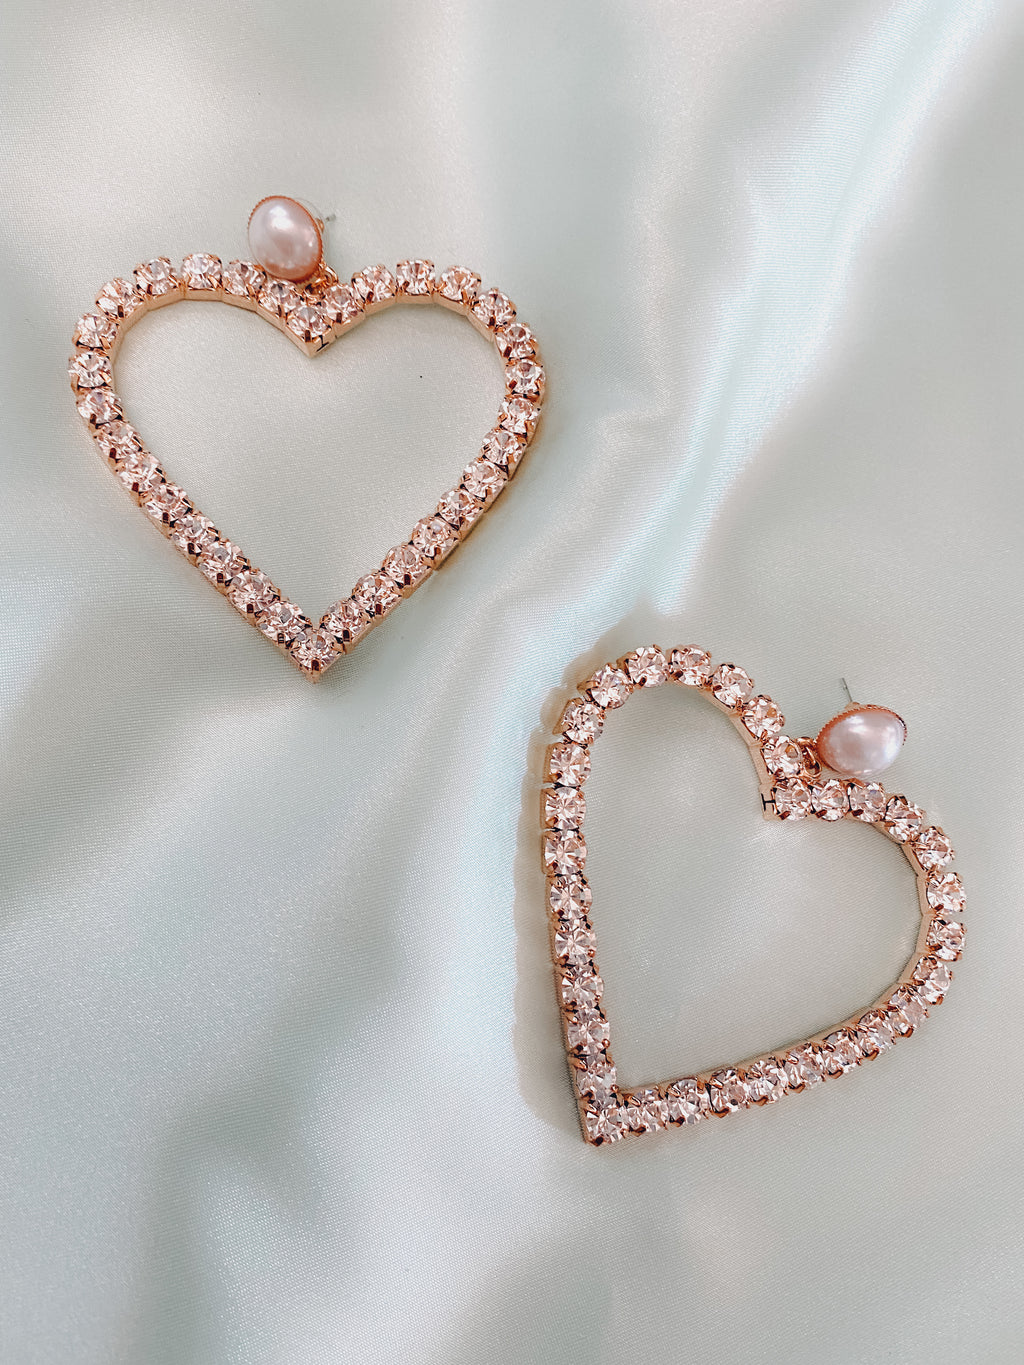 Romantic Heart earrings - Sugar Rose